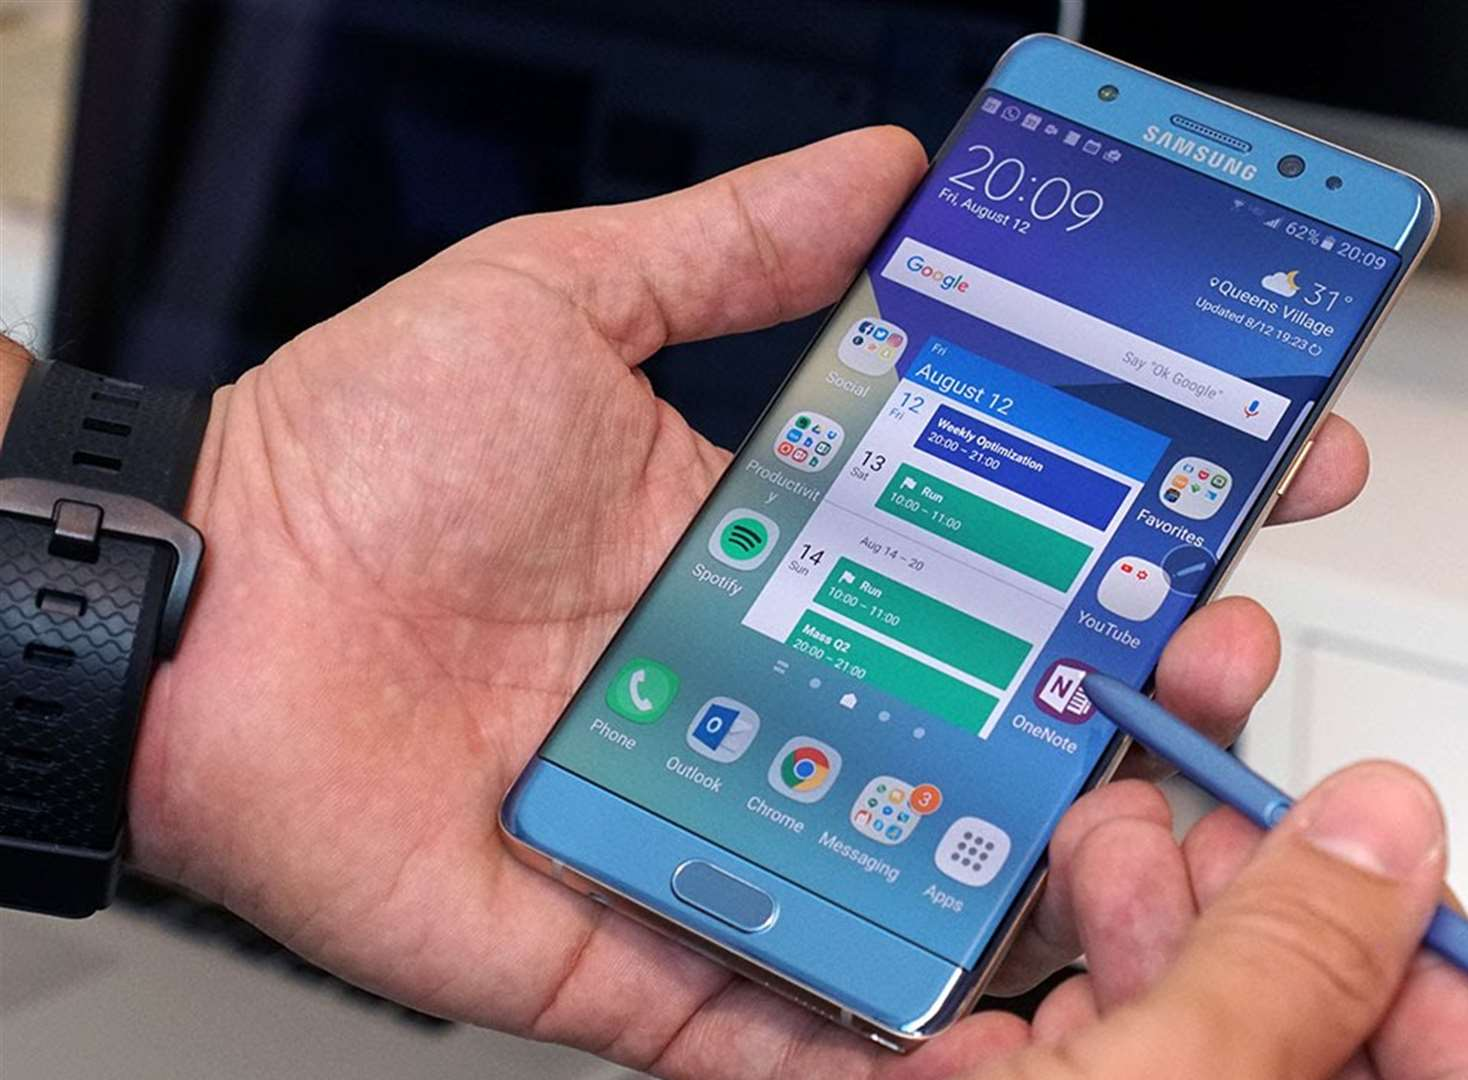 Samsung warning as phones catch fire